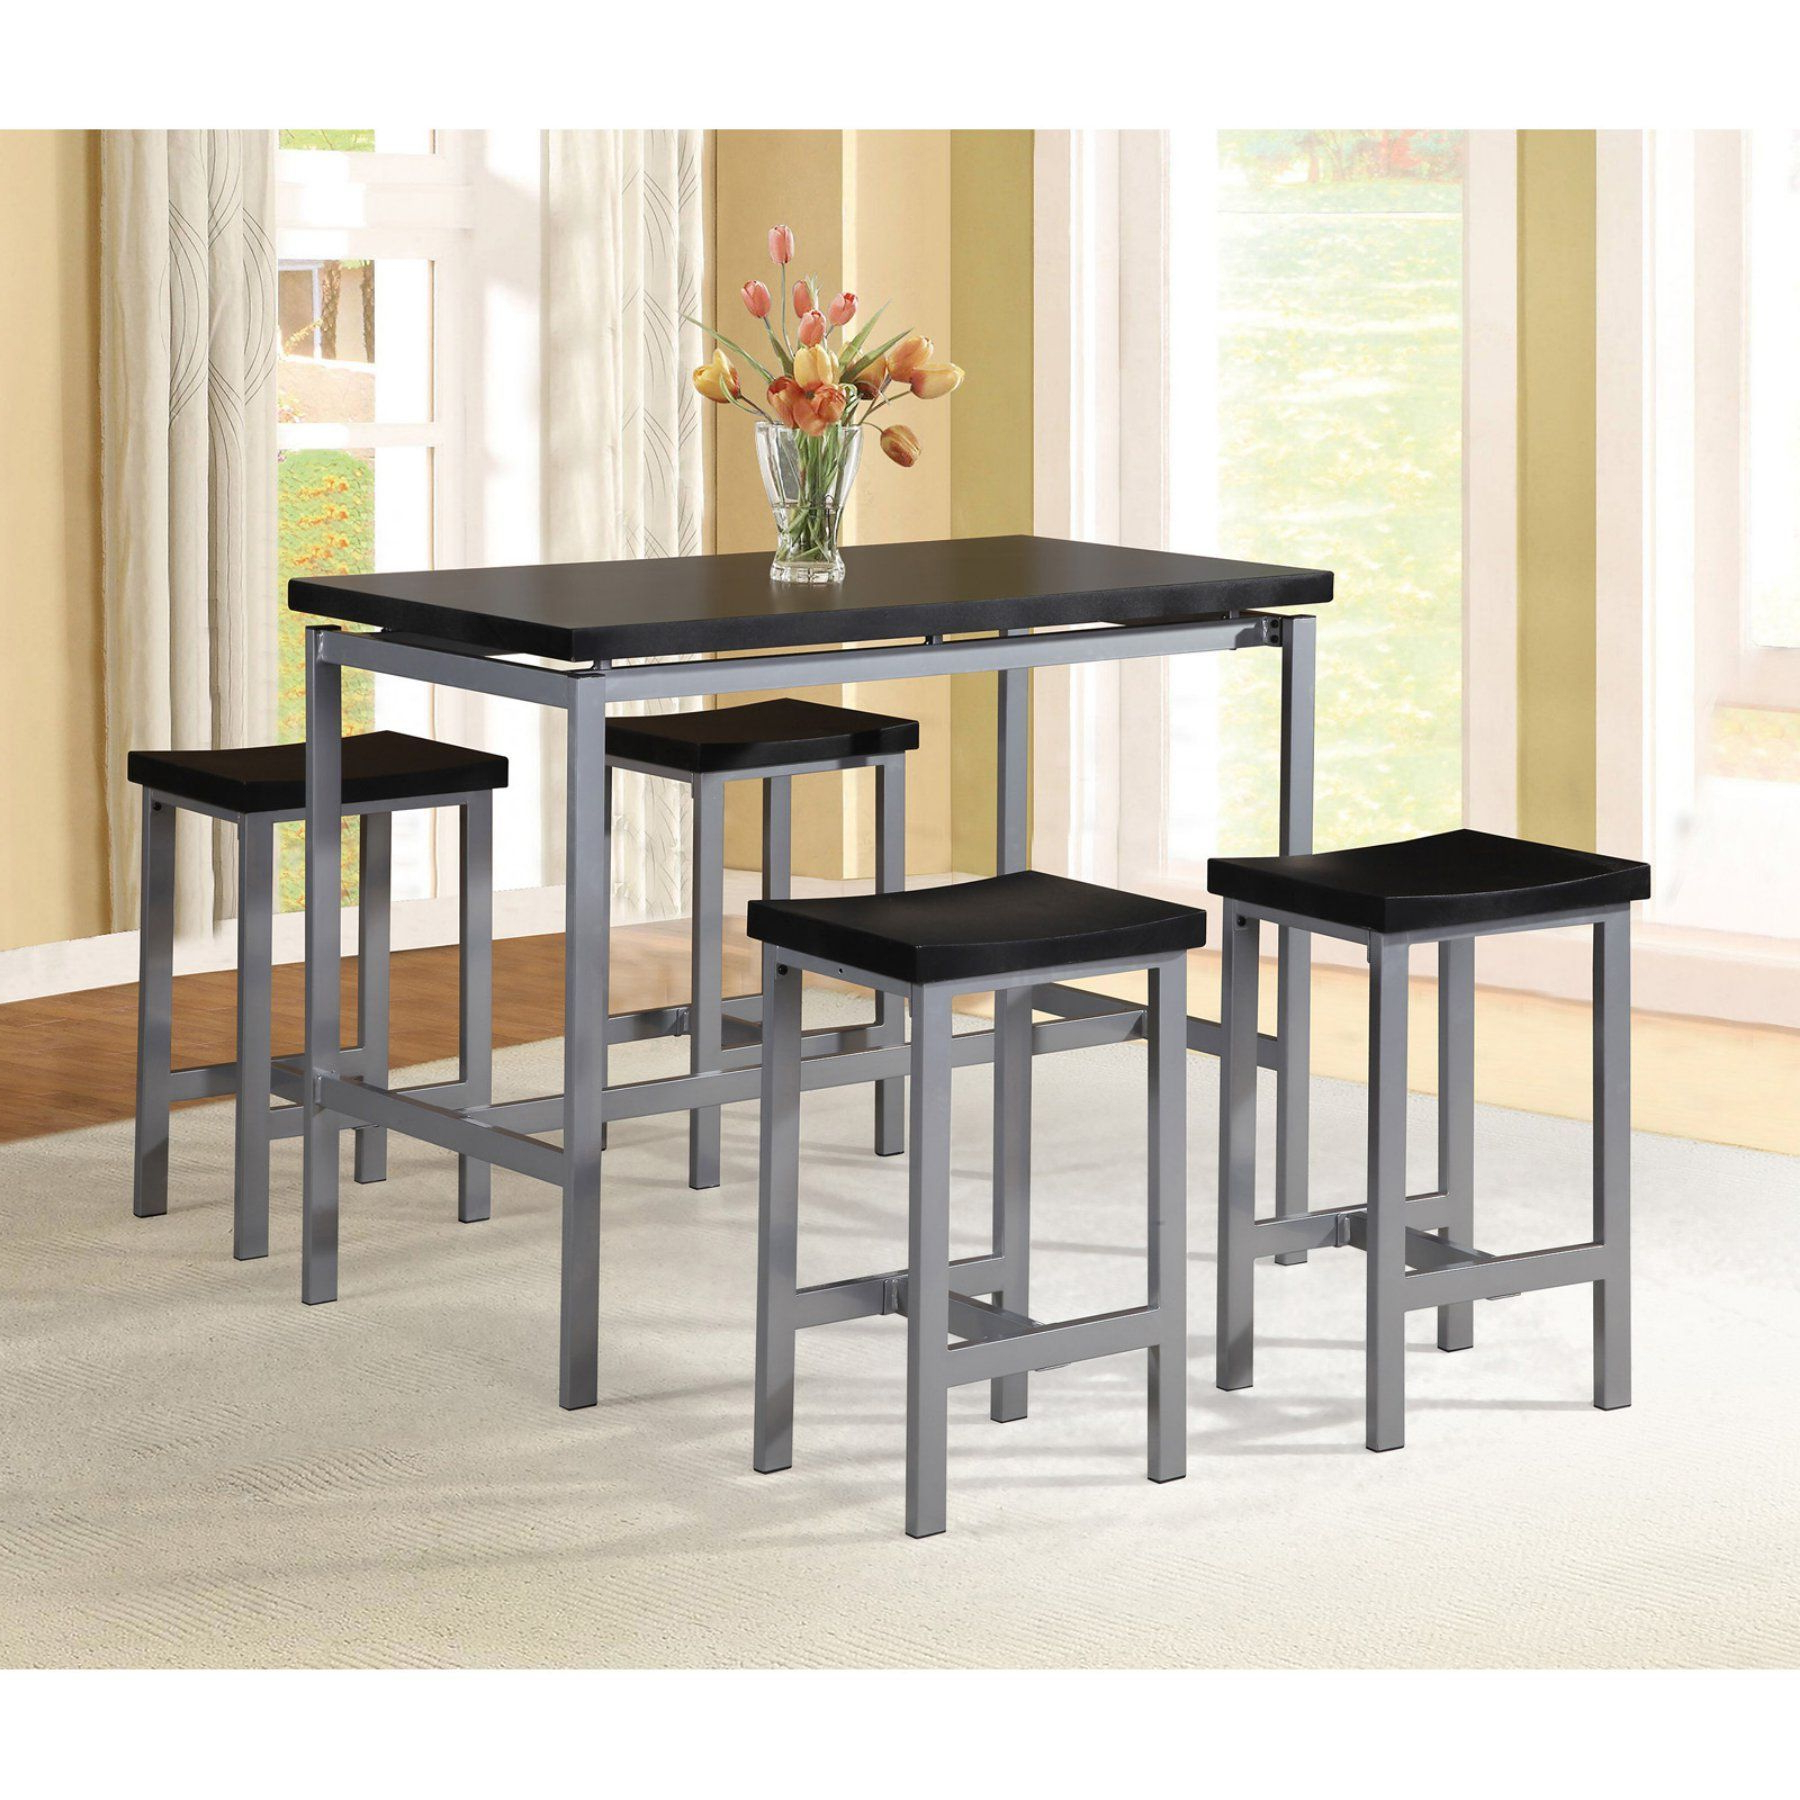 Preferred Milton Greens Stars Aaron 5 Piece Counter Height Dining Set – 7847 For Denzel 5 Piece Counter Height Breakfast Nook Dining Sets (View 20 of 25)